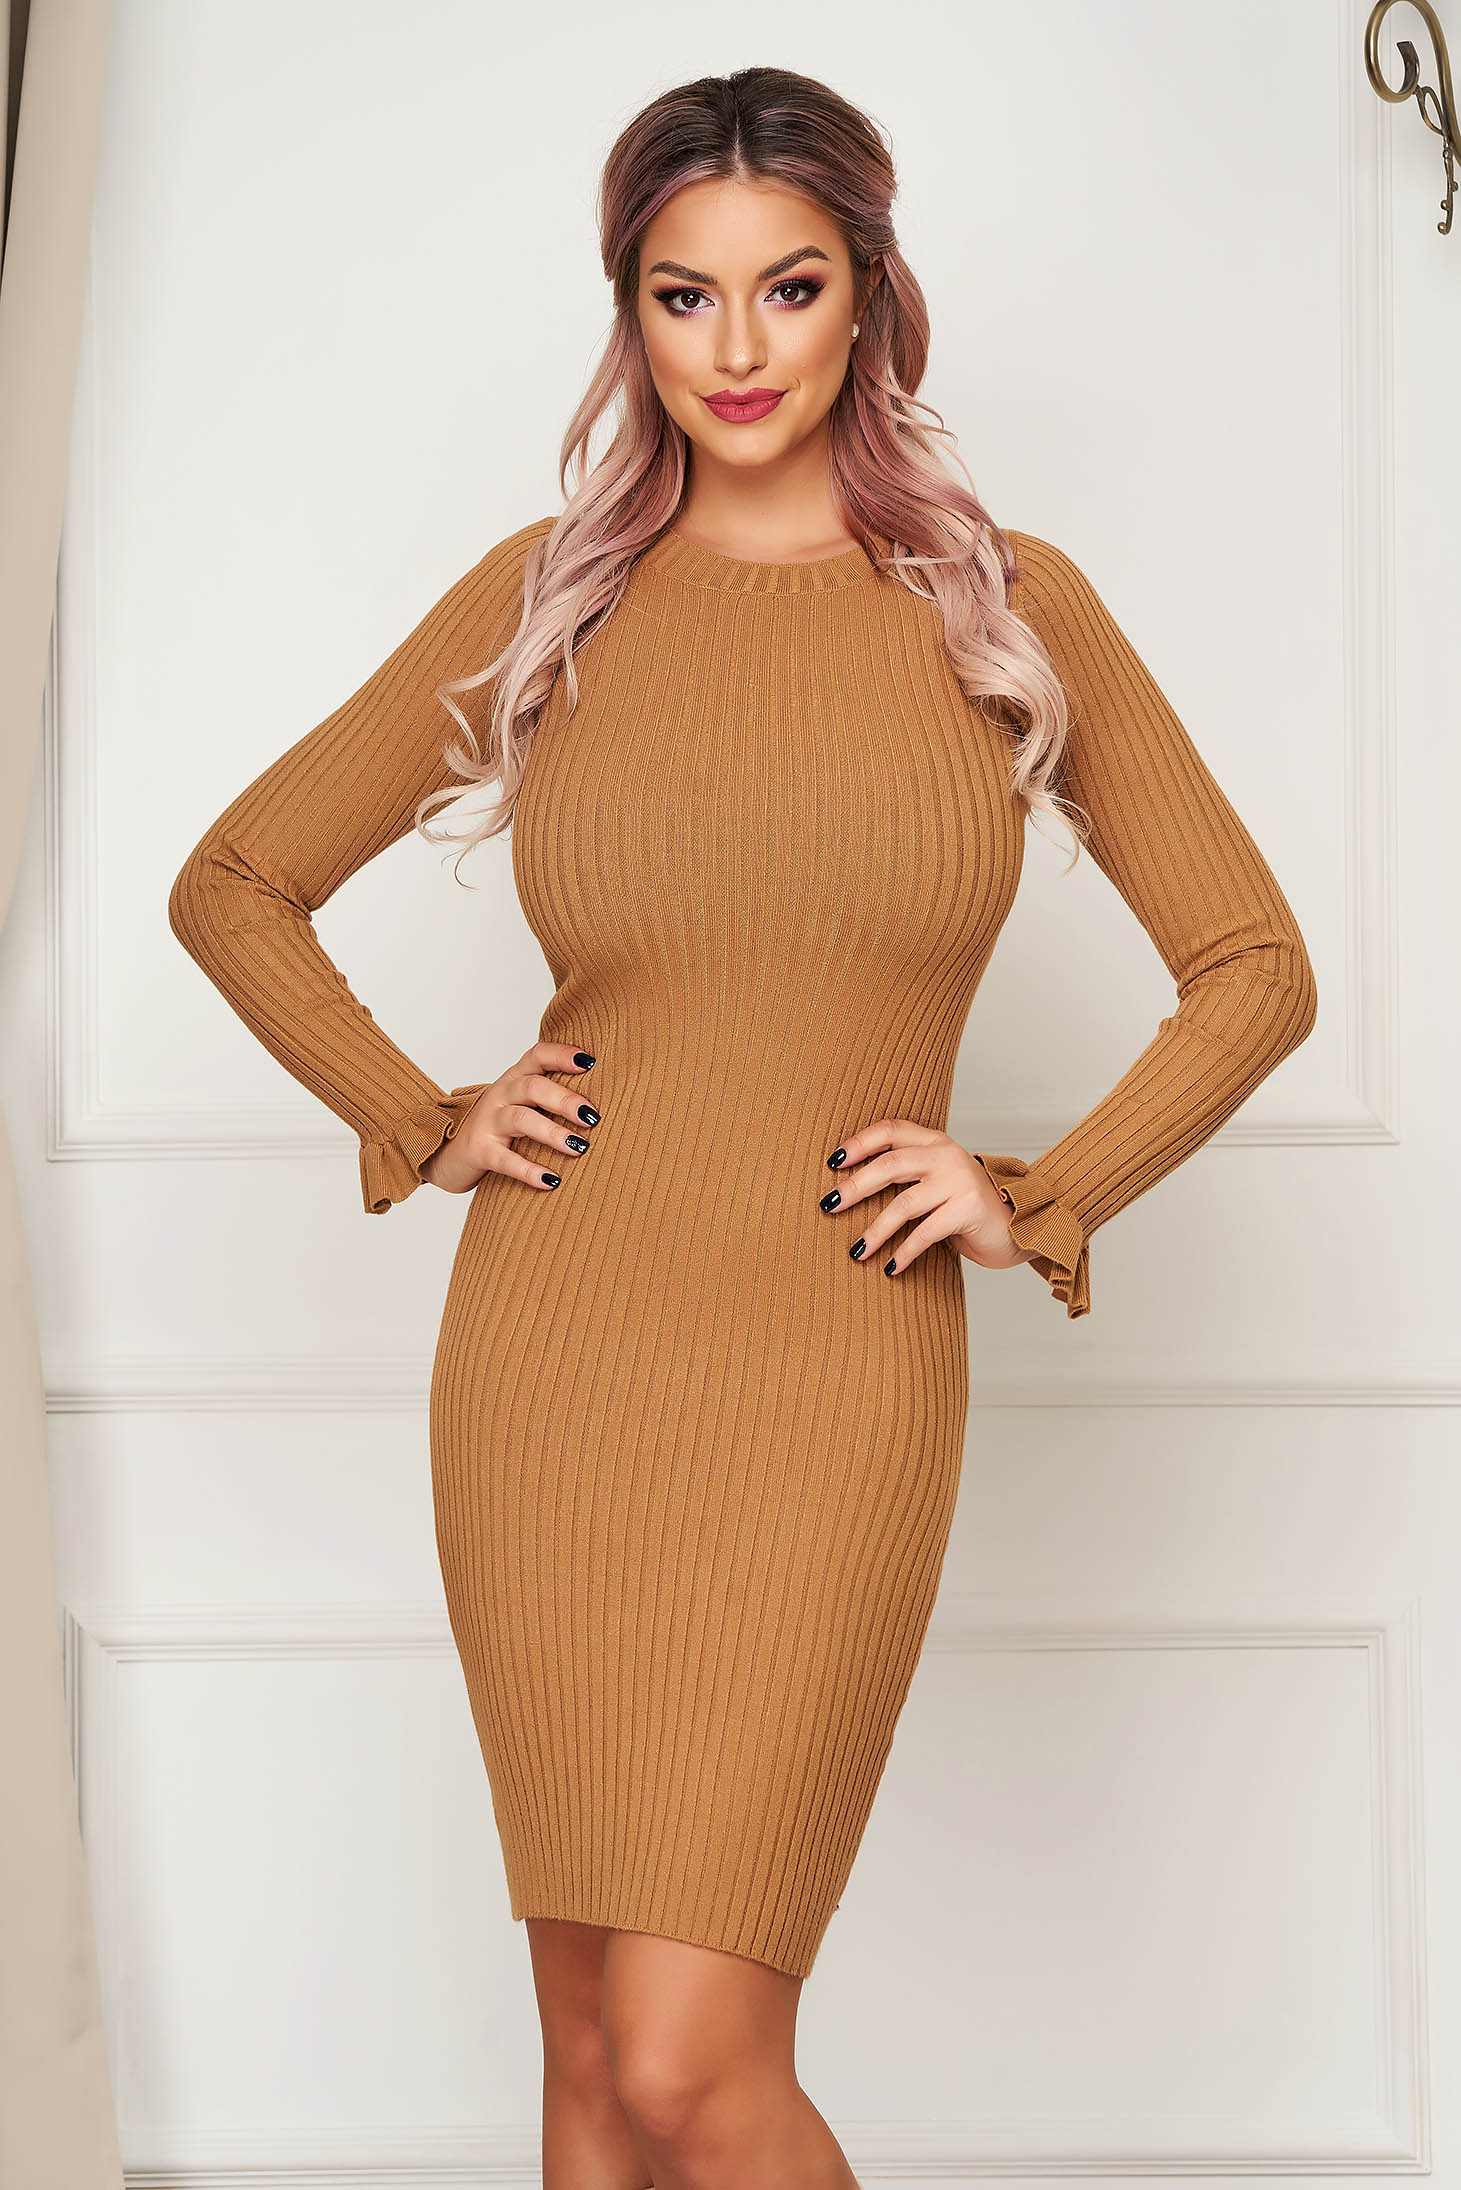 Brown dress short cut daily pencil knitted with ruffled sleeves